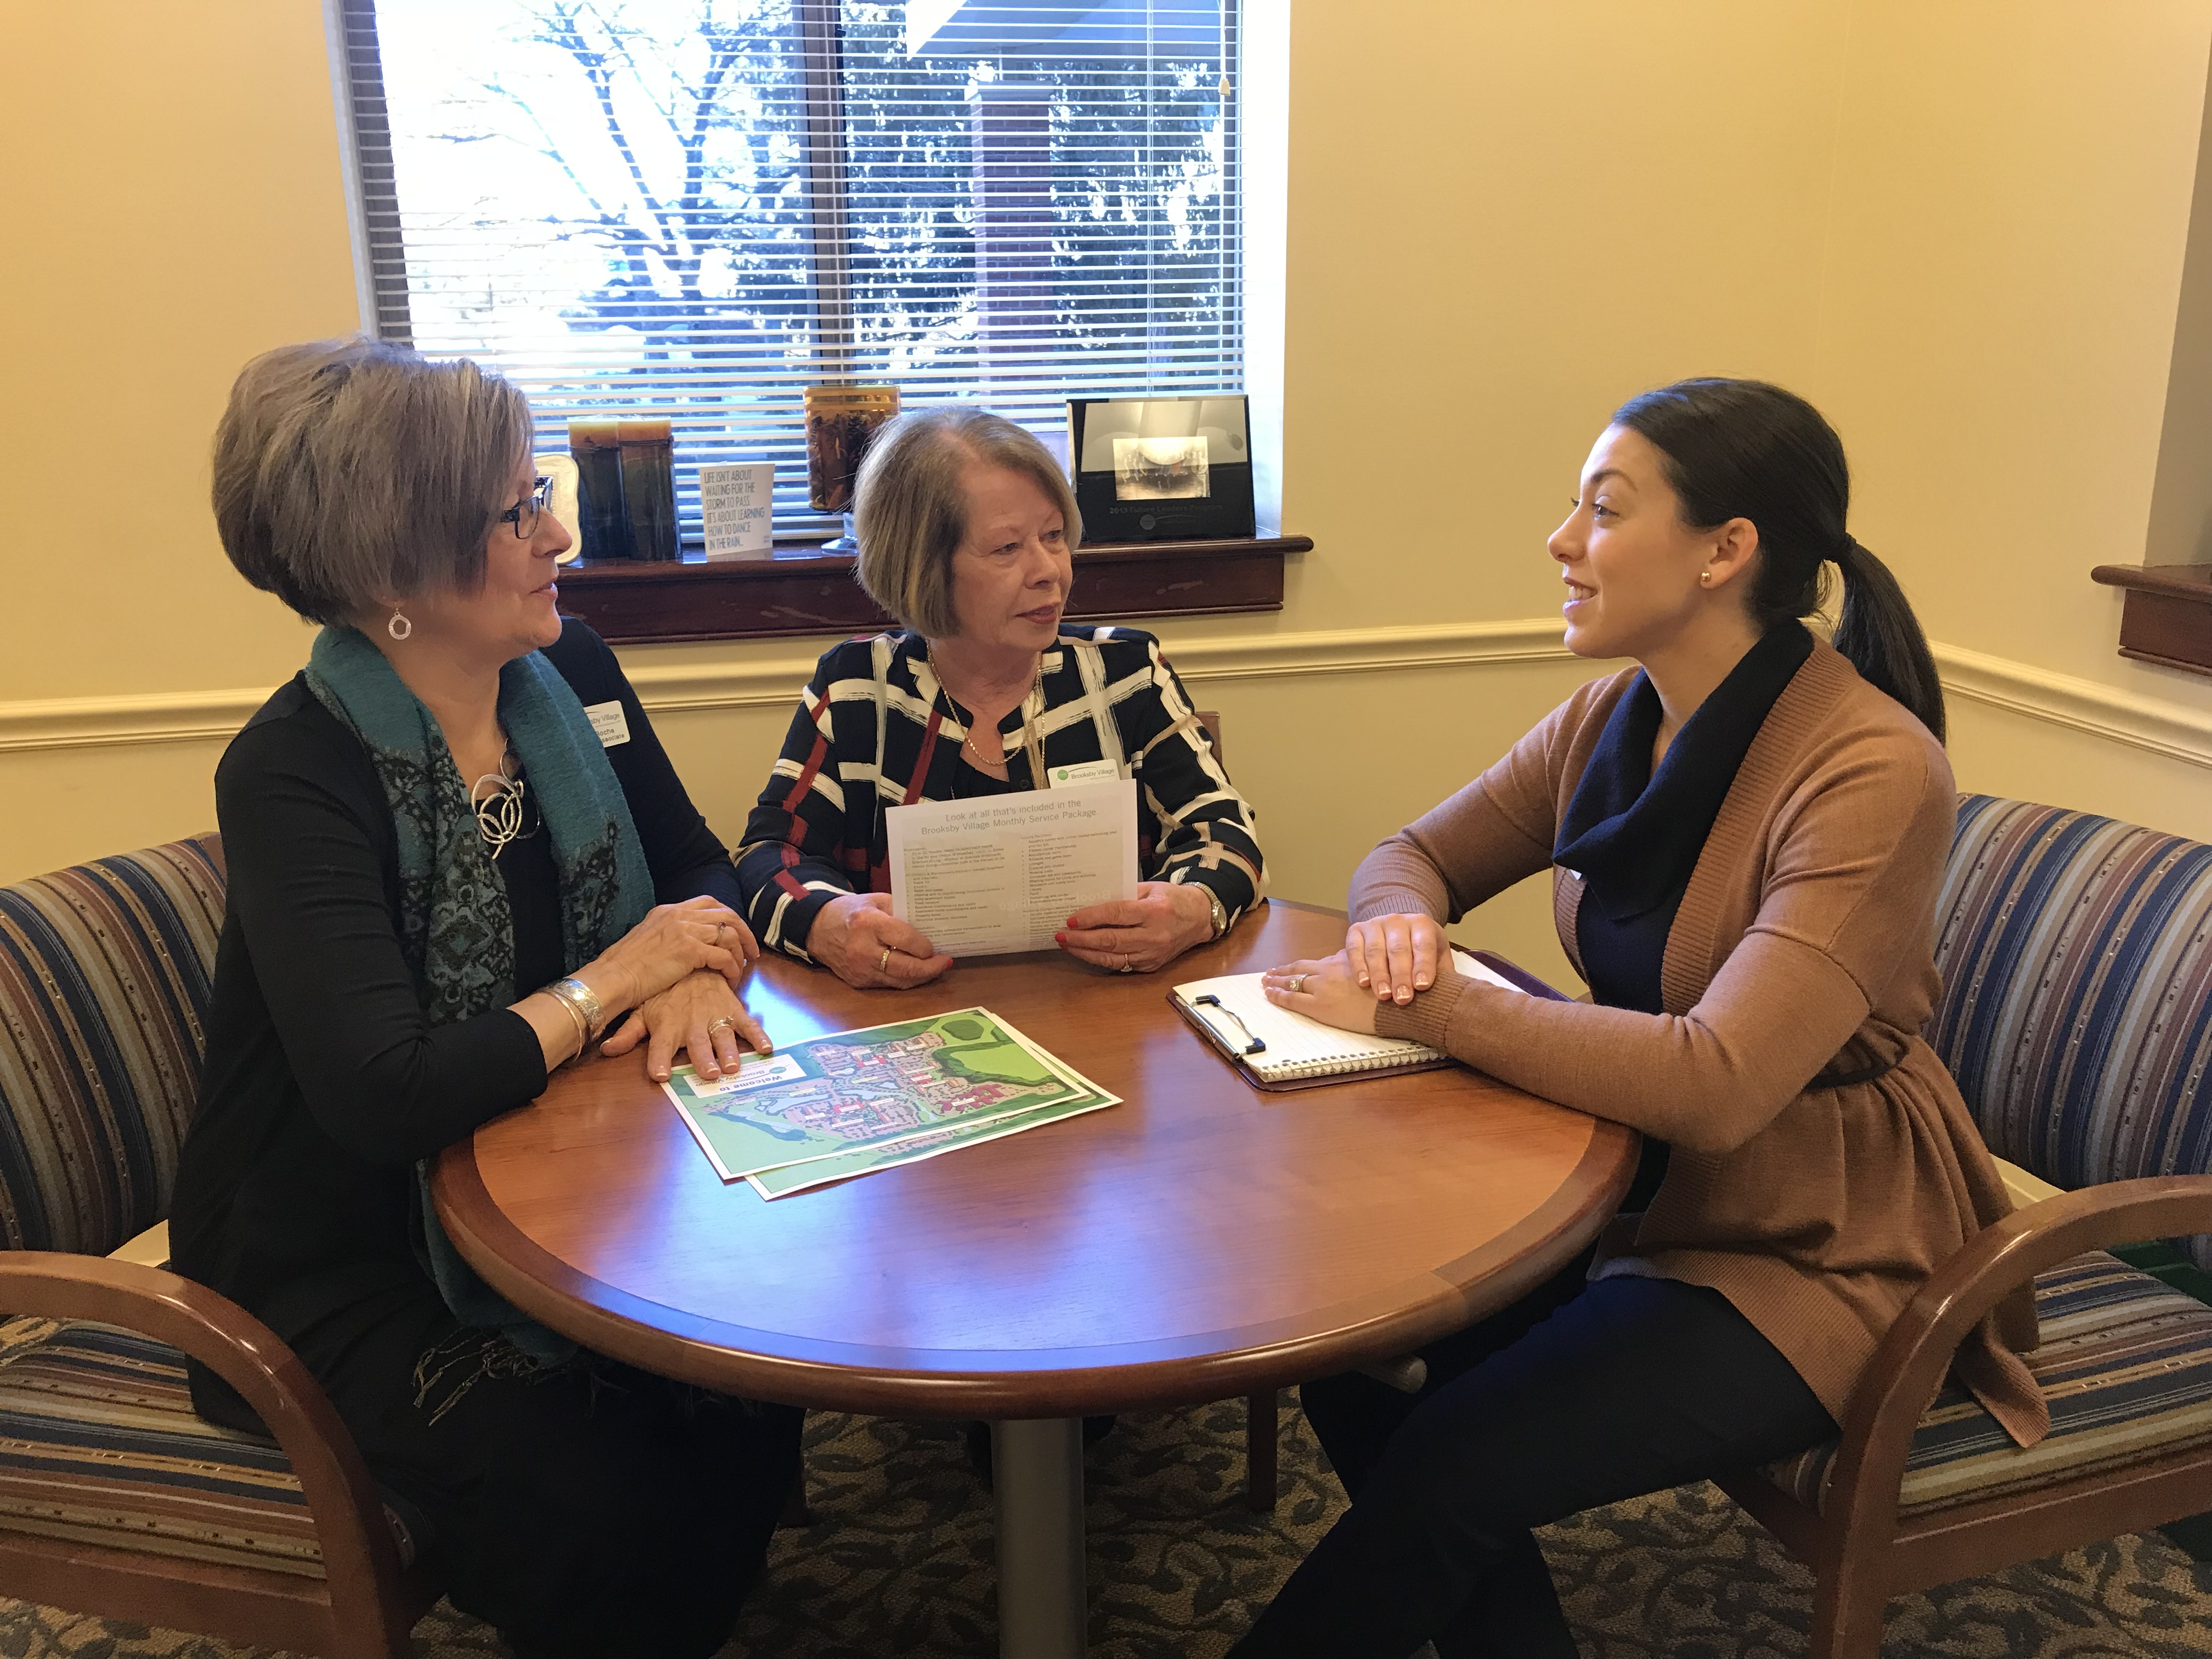 From left to right; Diane DeRoche, Senior Sales Associate, Brooksby Village; Barbara Nunes, Sales Associate, Brooksby Village meeting with Gina Fernandez, Sales Manager, Brooksby Village to discuss all the appointments for the day in the Sales Office.